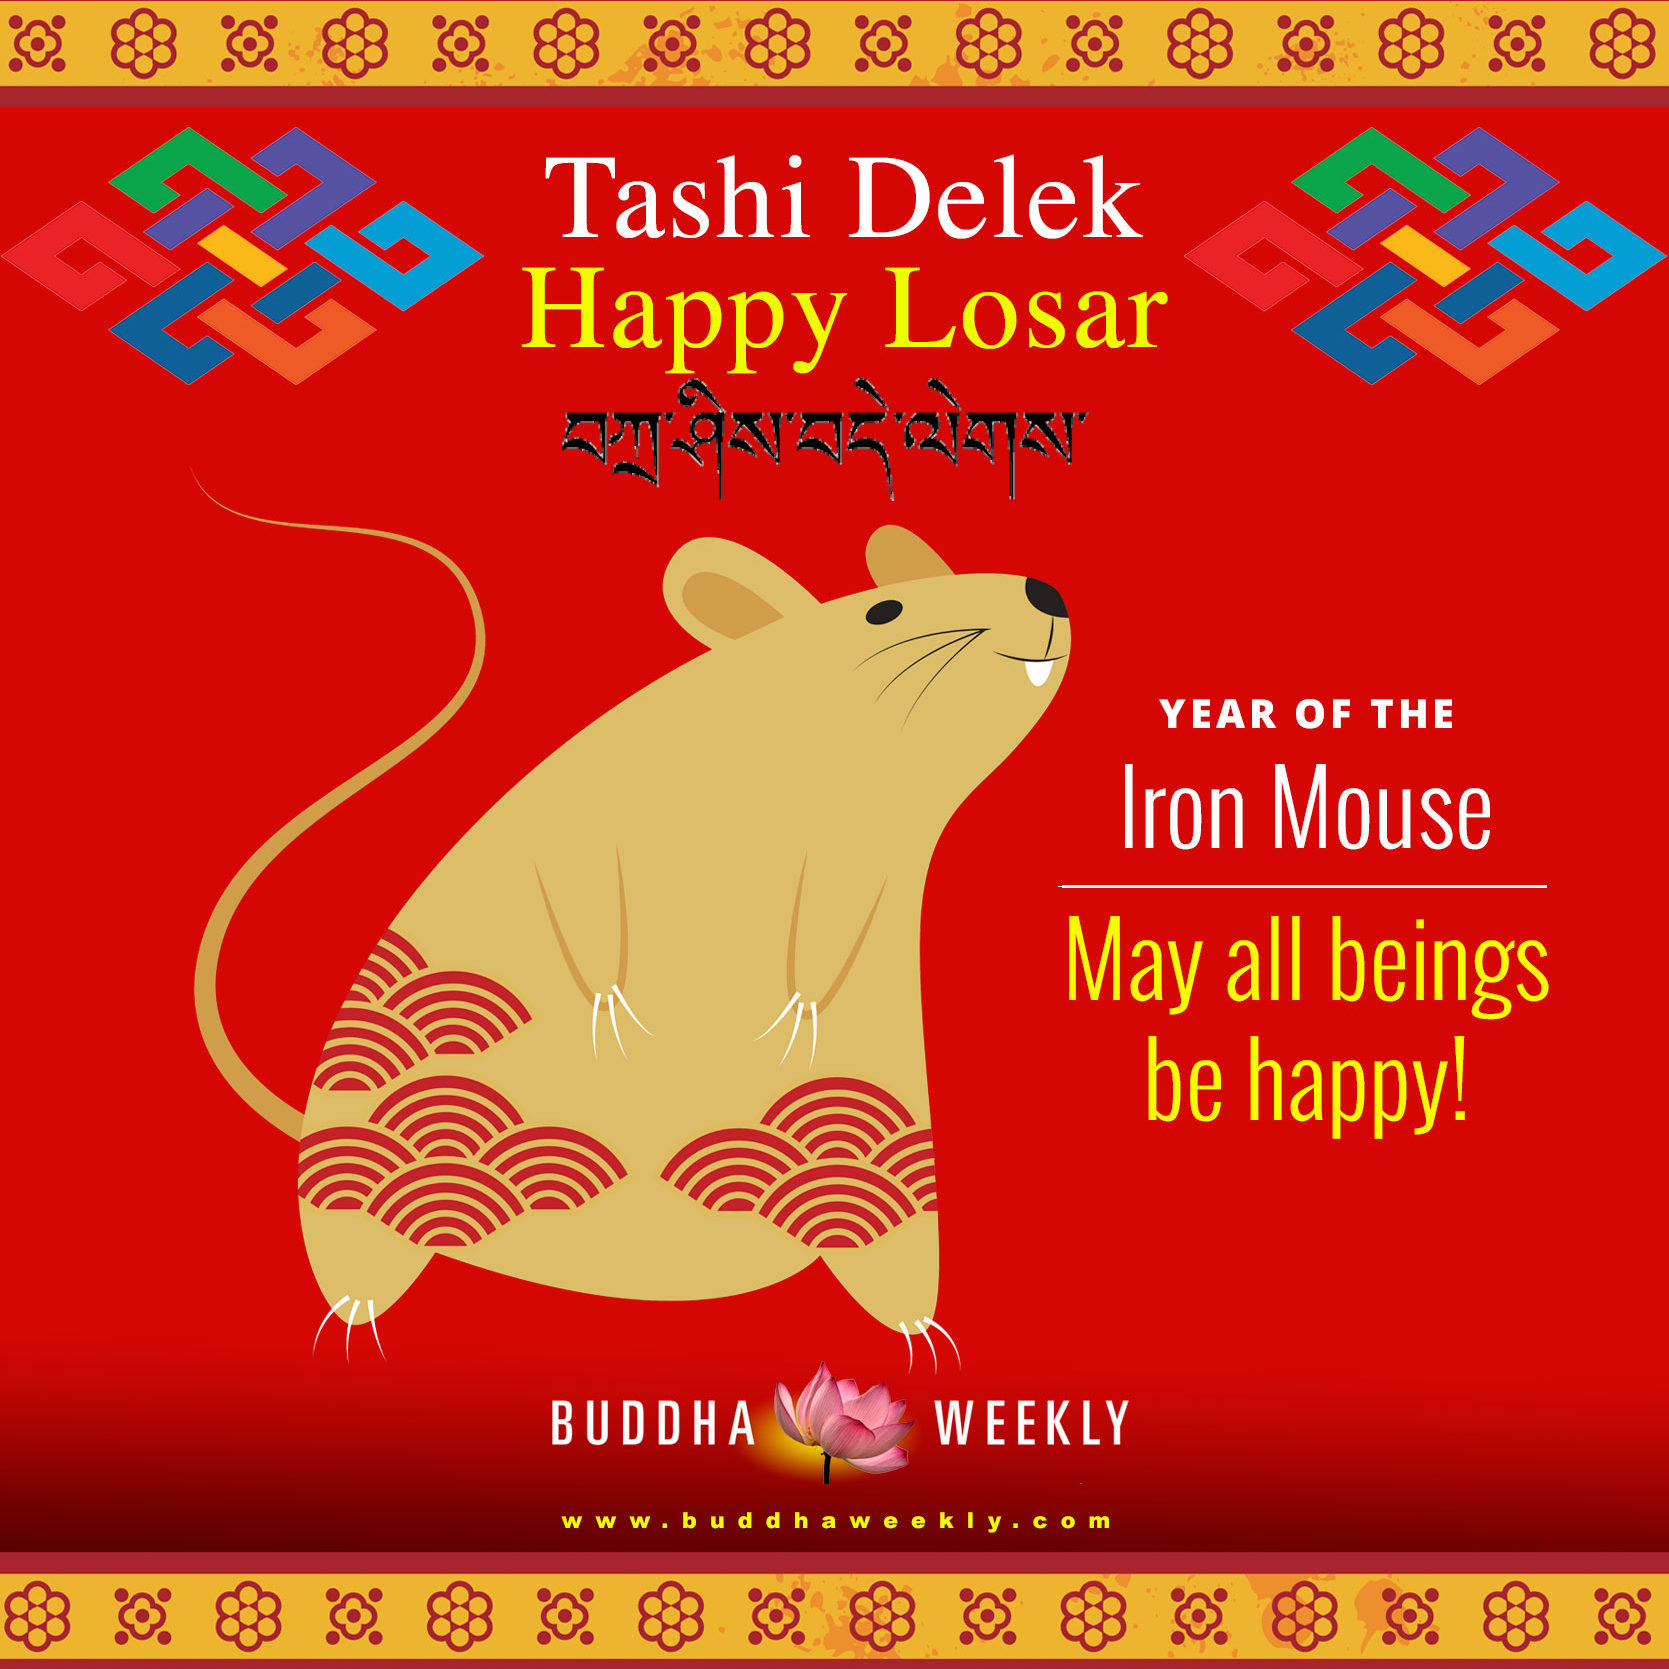 Happy Losar 2020, Year of the Iron Mouse.